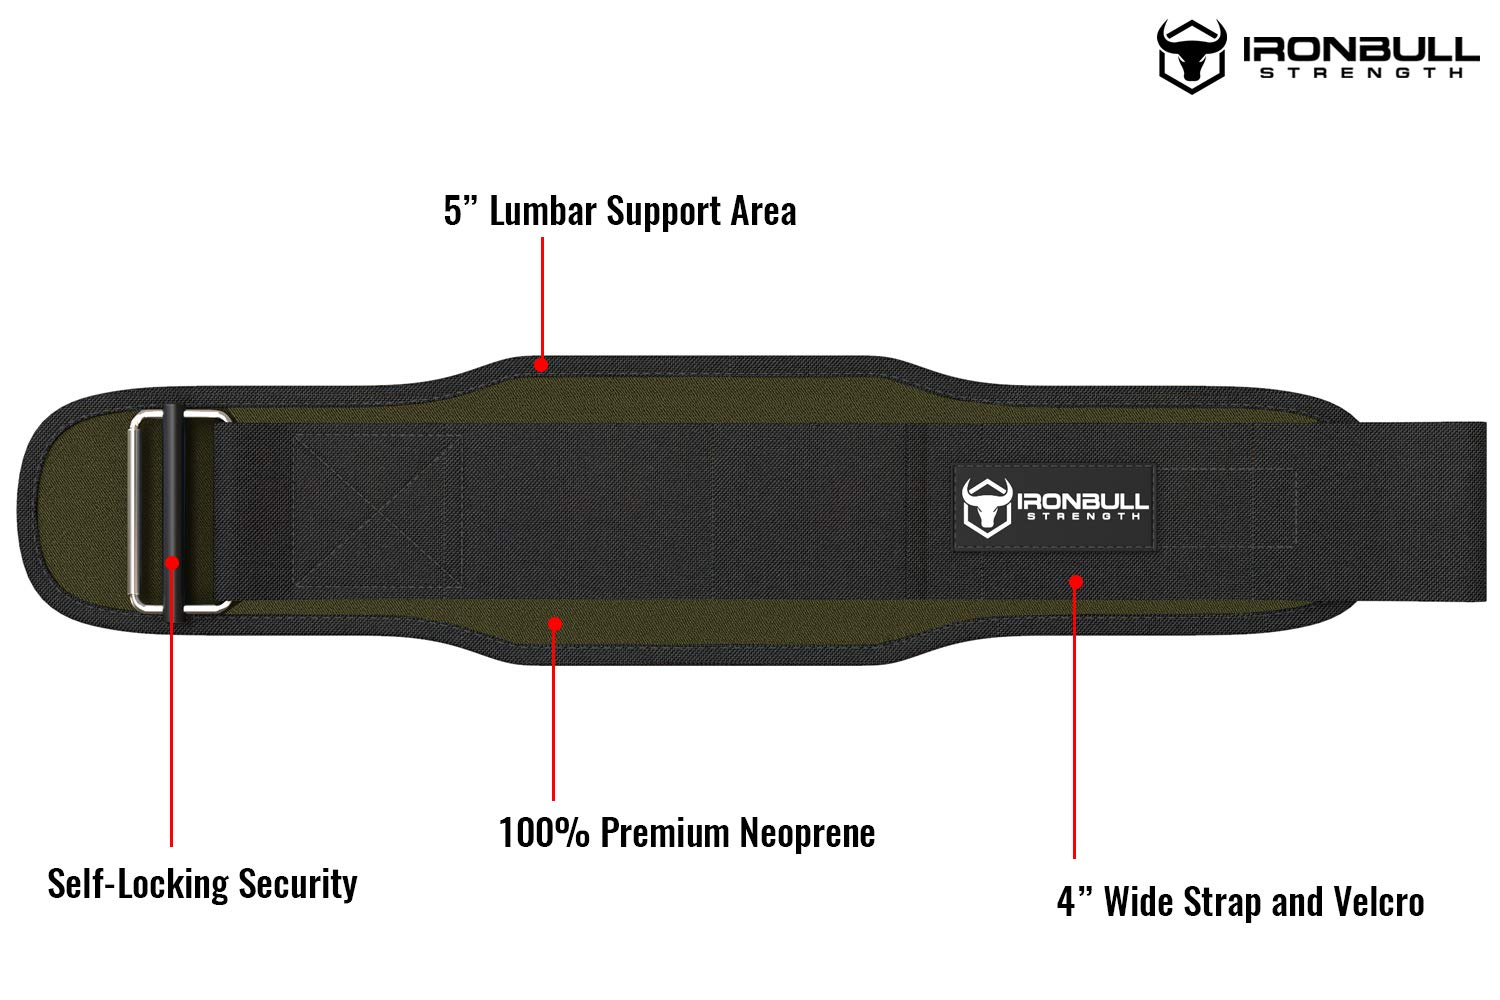 5 Inch Self-Locking Weightlifting Back Support Weight Lifting Belt for Cross Training Workout Back Support for Lifting Fitness and Powerlifitng Men and Women